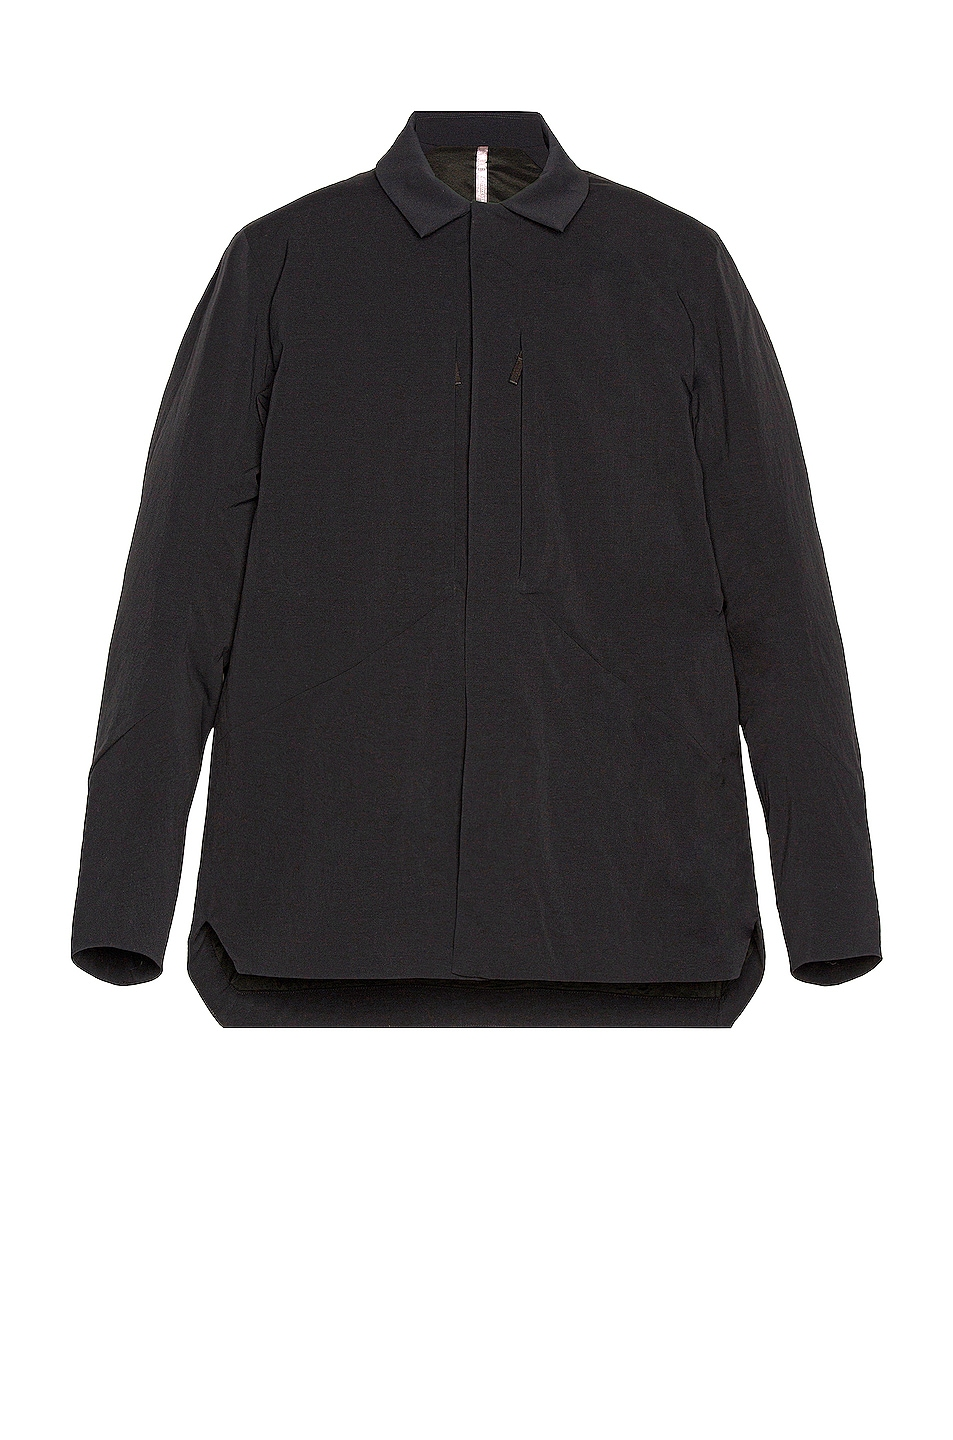 Image 1 of Veilance Mionn IS Overshirt in Black